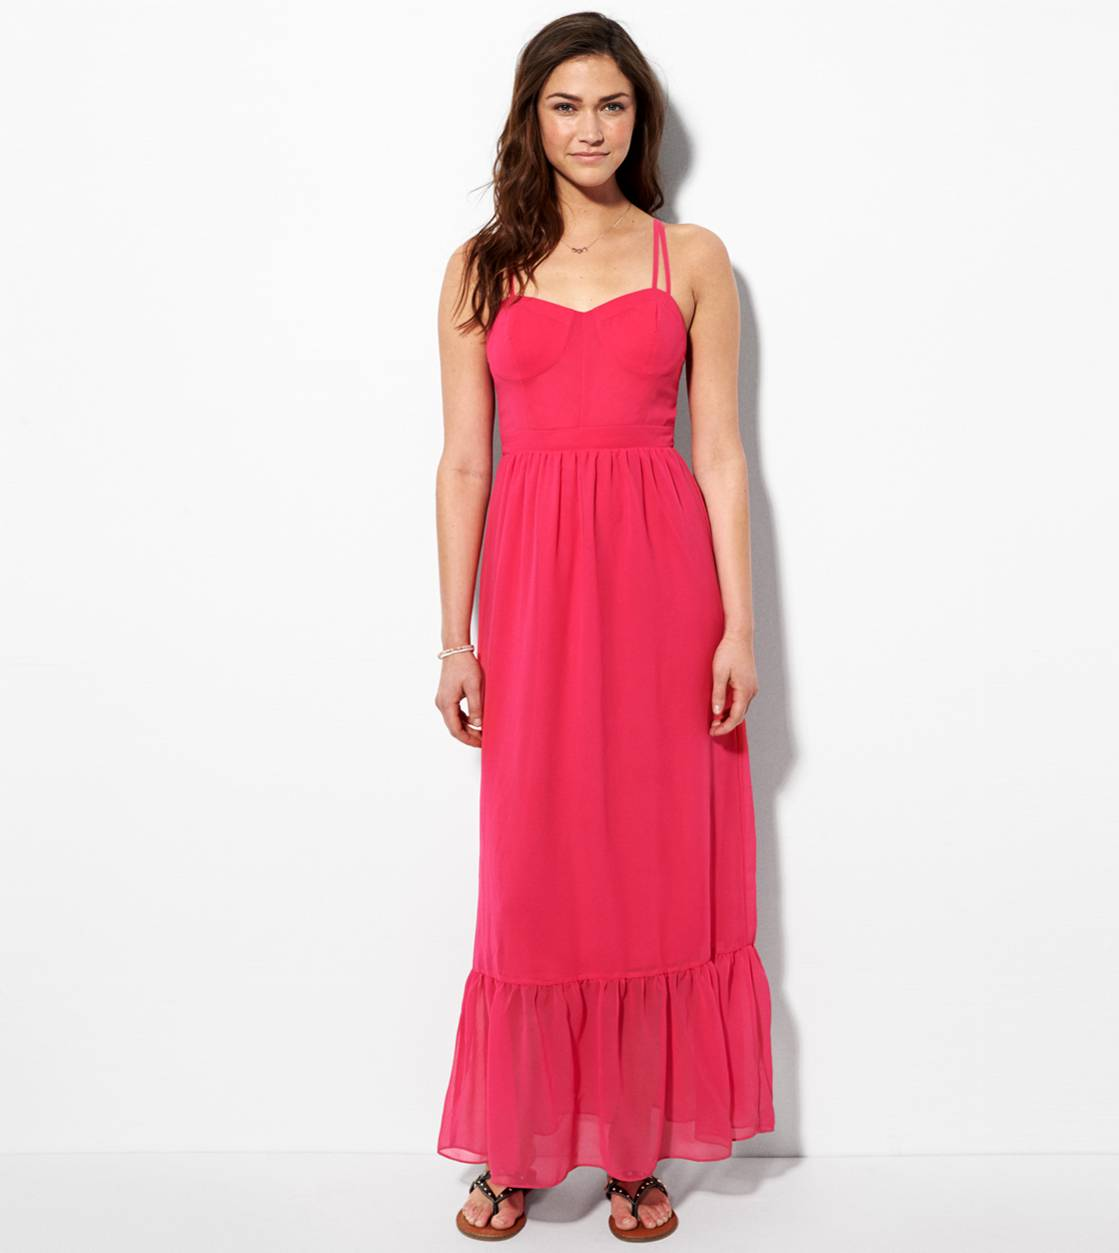 Pink AE Corset Maxi Dress